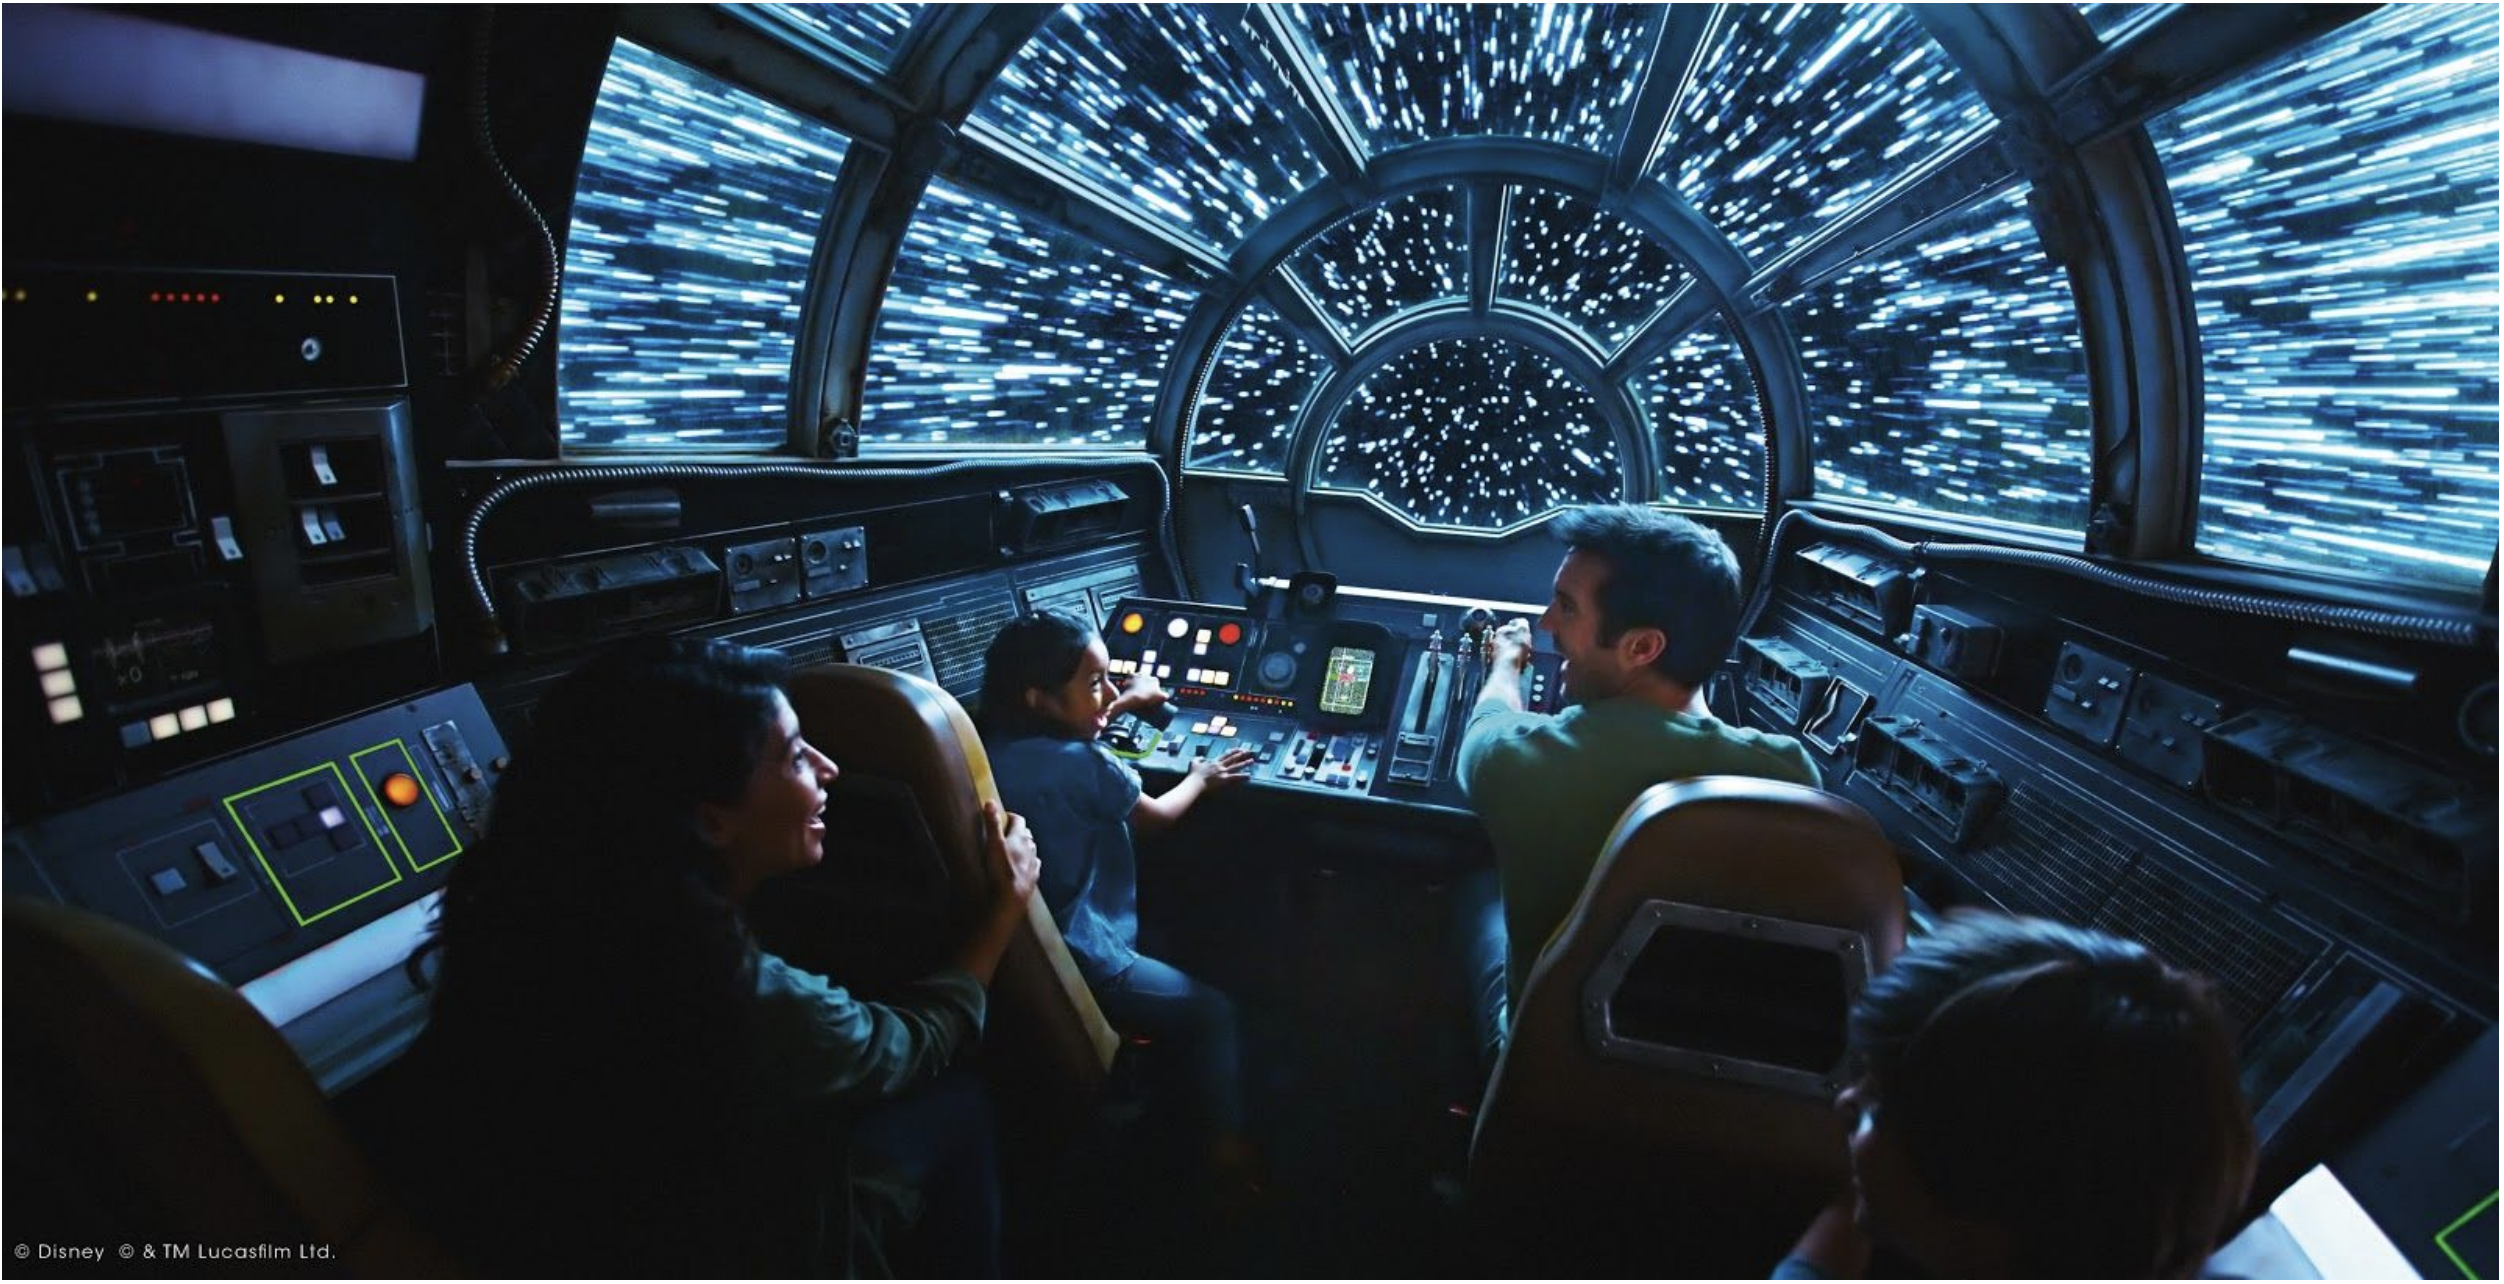 Four guests on simulated Millenium Falcon:Smugglers Run where they are seen to be zooming through space and stars with blue hue casted over the photo. Preview for Star Wars: Galaxy's Edge at Disney's Hollywood Studios.